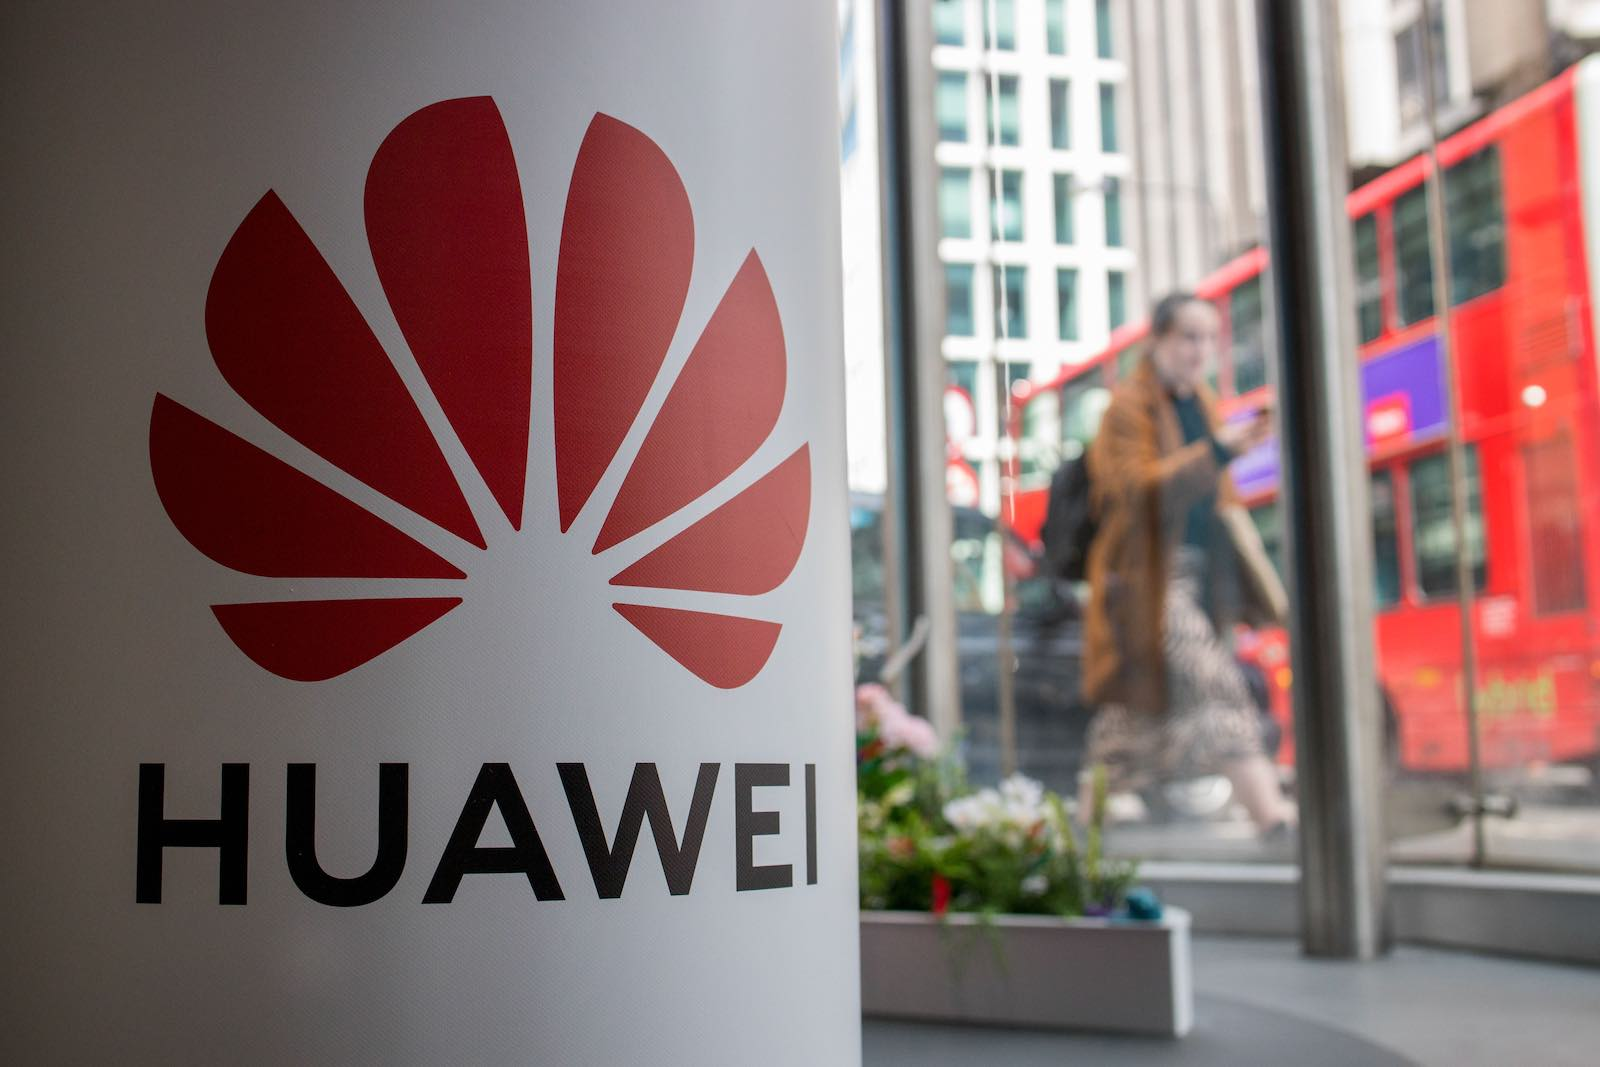 In many ways, the UK has been hedging on the Huawei issue (Photo: Tolga Akmen via Getty)